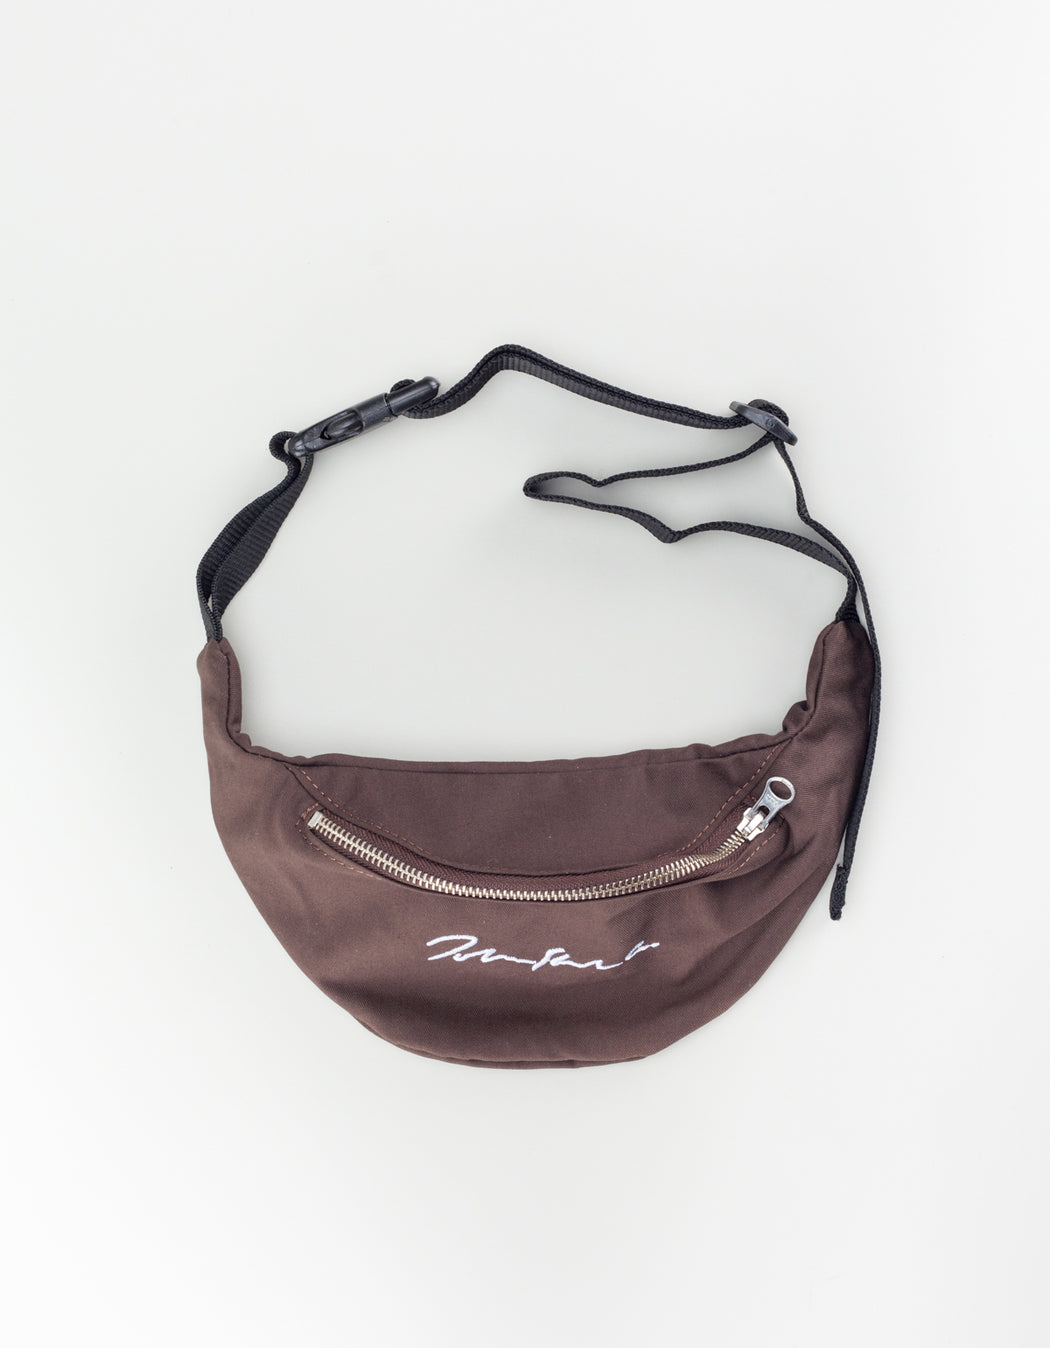 Polar Signature Hip Sack Bag Brown